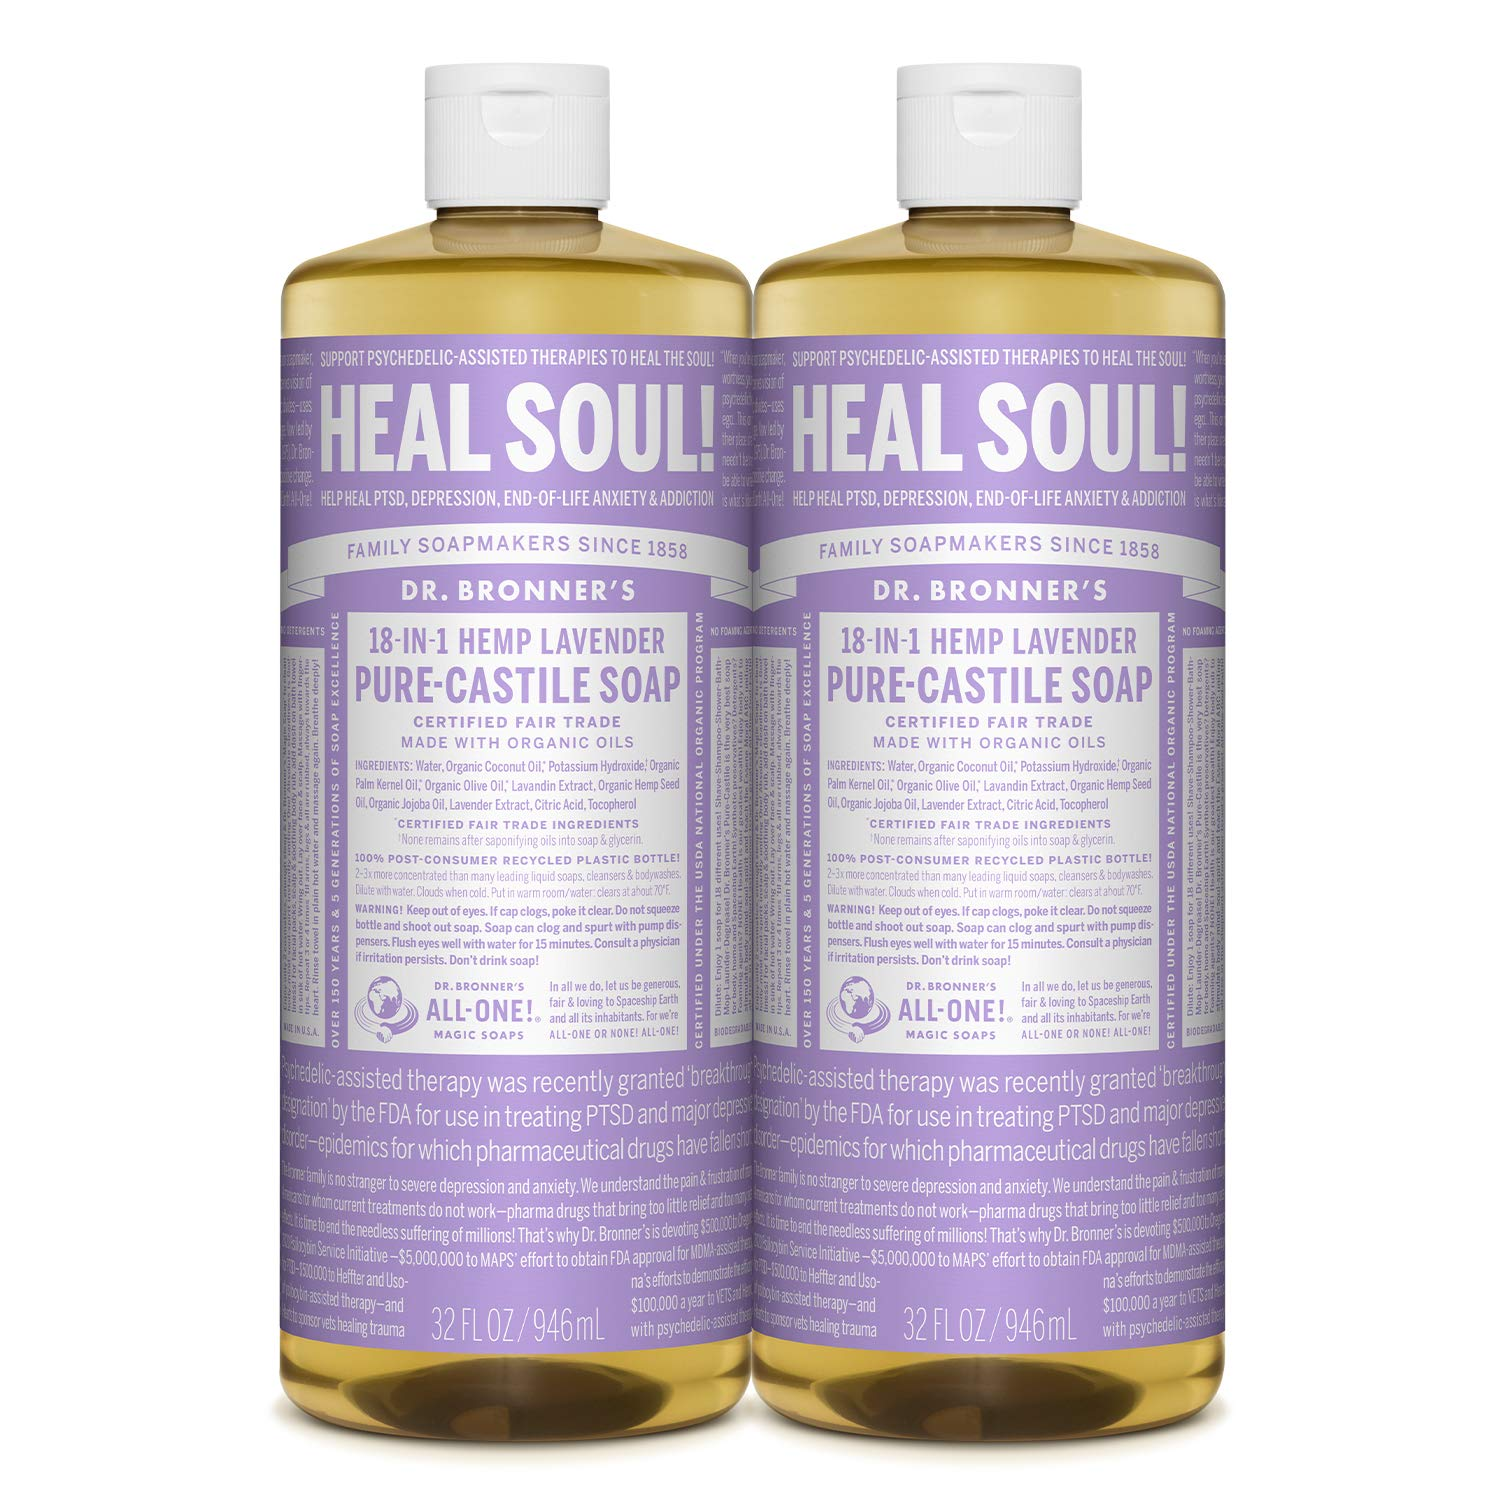 Dr. Bronner's - Pure-Castile Liquid Soap (Lavender, 32 ounce, 2-Pack) - Made with Organic Oils, 18-in-1 Uses: Face, Body, Hair, Laundry, Pets and Dishes, Concentrated, Vegan, Non-GMO : Bath Soaps : Beauty